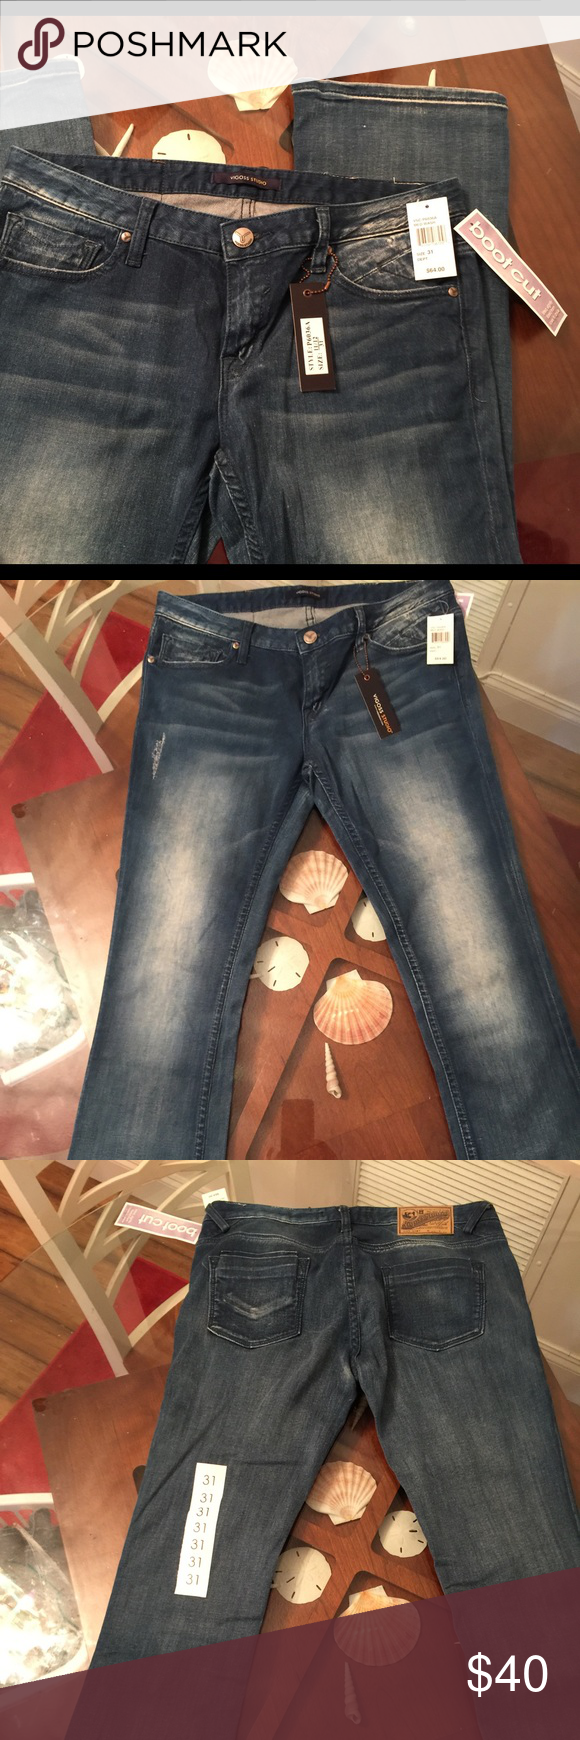 """Vigoss medium wash boot leg flare jeans Vigoss medium wash bootcut flare jeans. New w tags. Fitted, slightly flared from knee to ankle  Size 31. Women's size 11/12.  Inseem: 32 Boot opening: 18""""  Smoke free home Vigoss Jeans Boot Cut"""